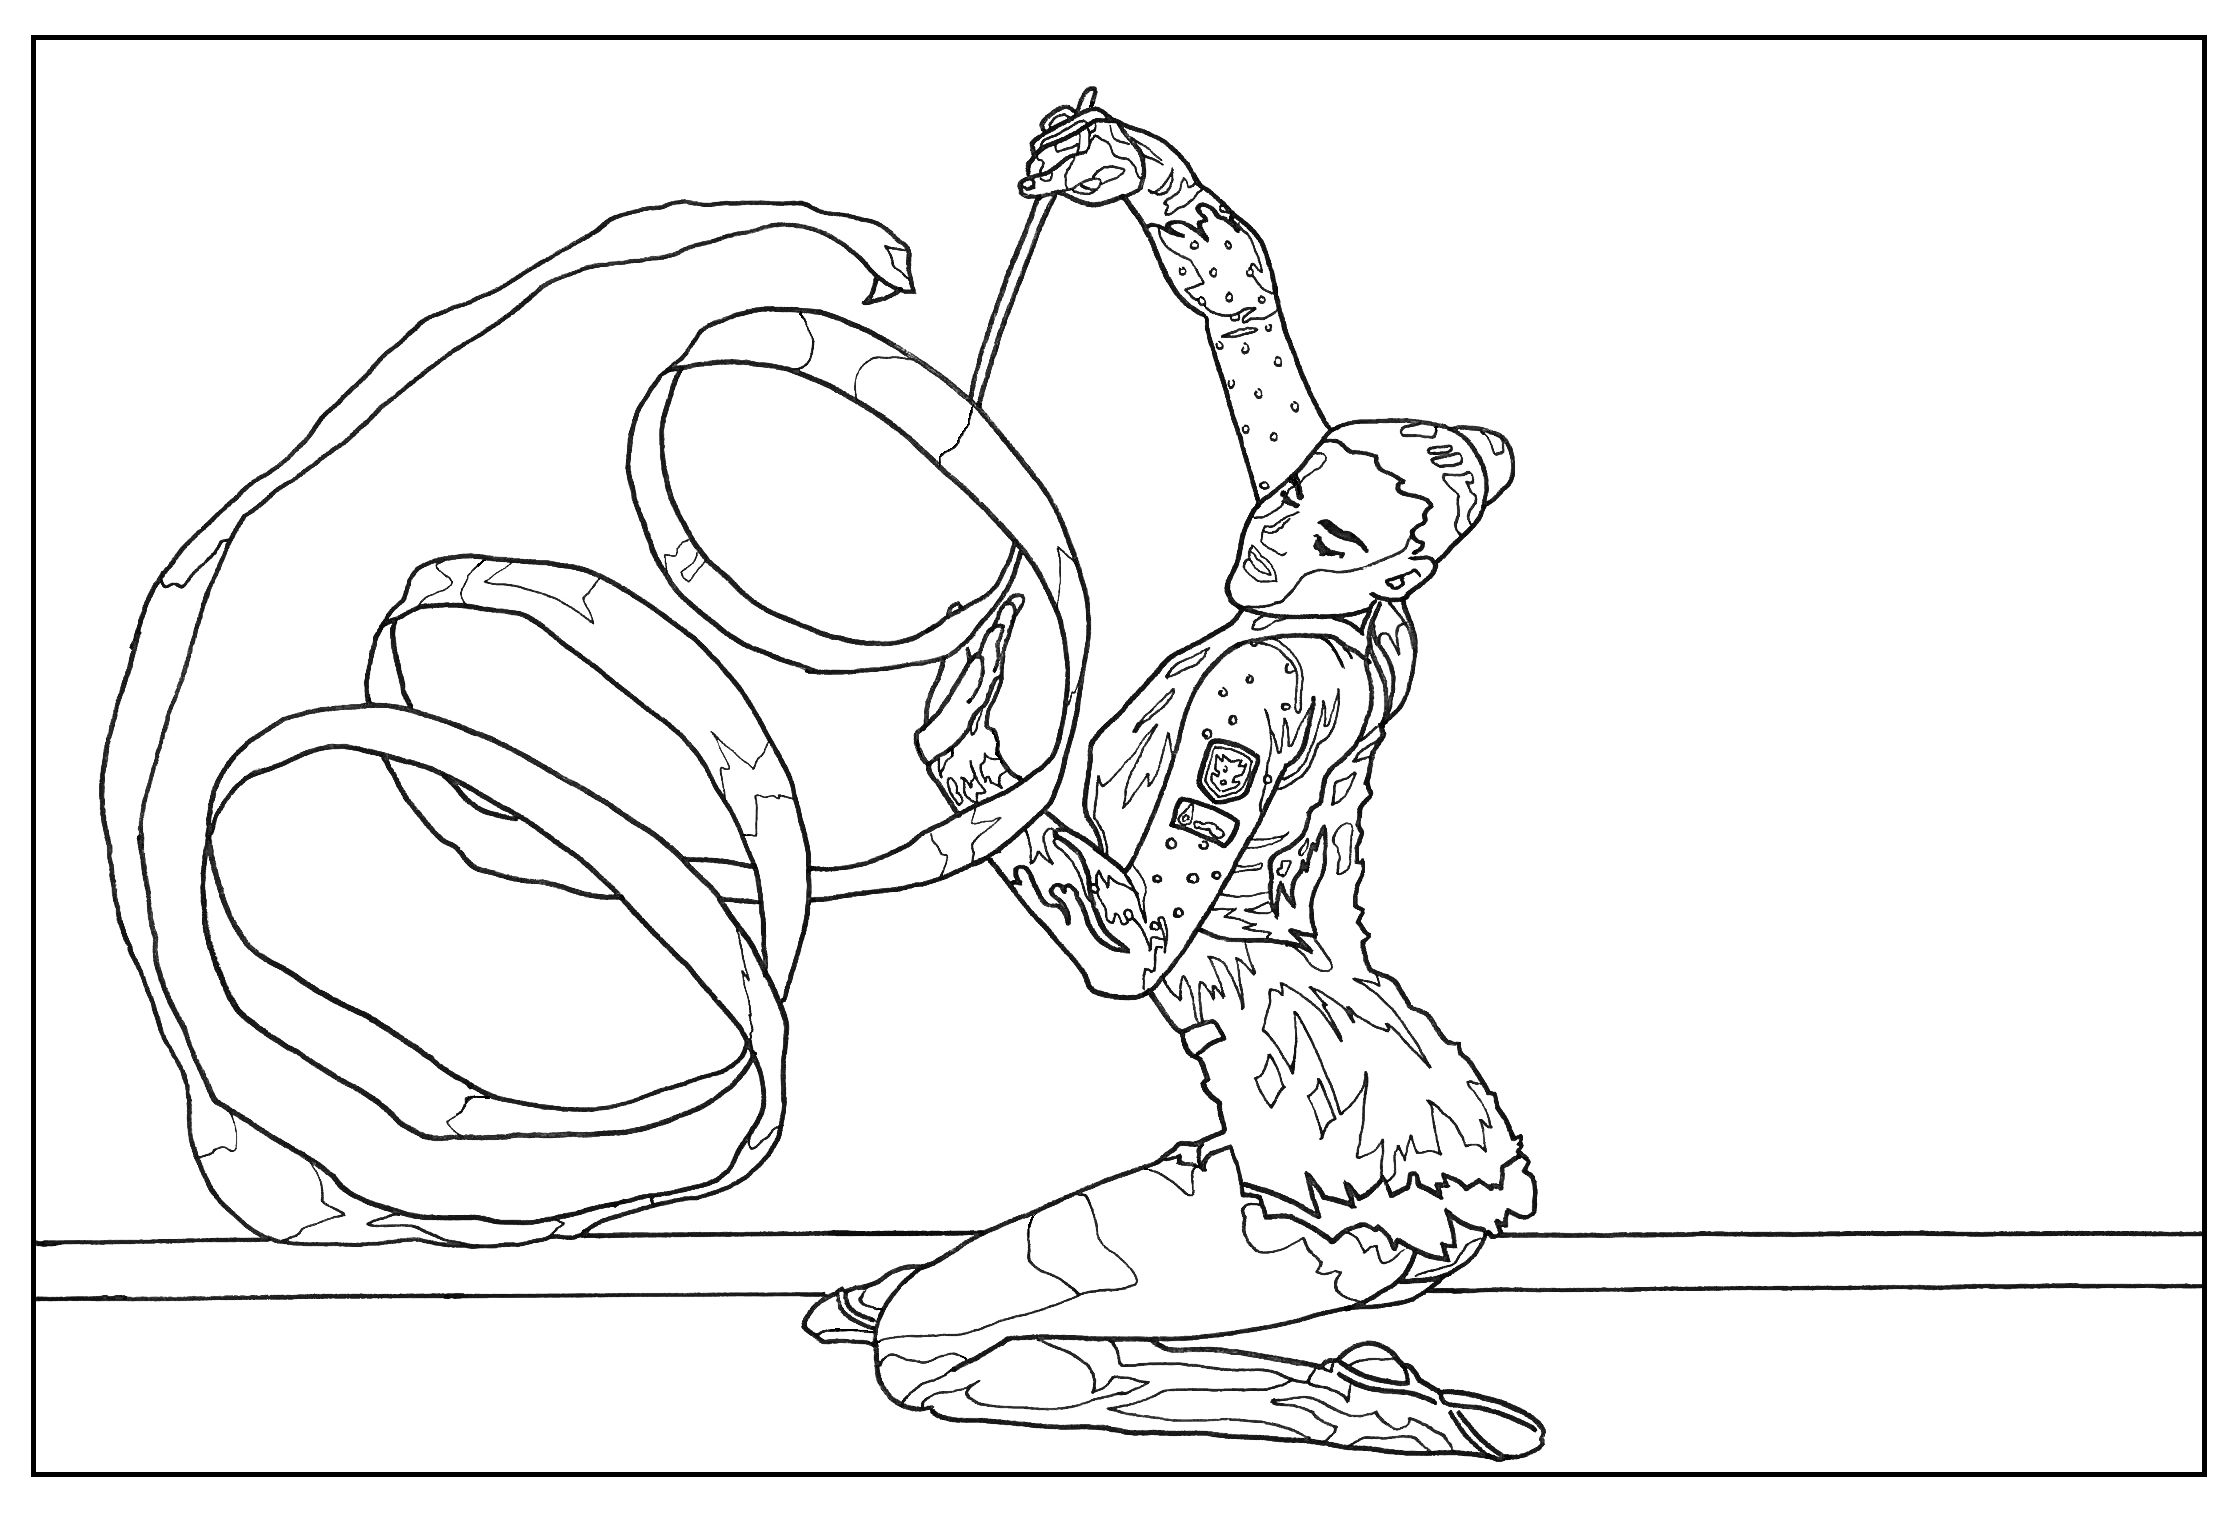 Simple Sports coloring page to download for free